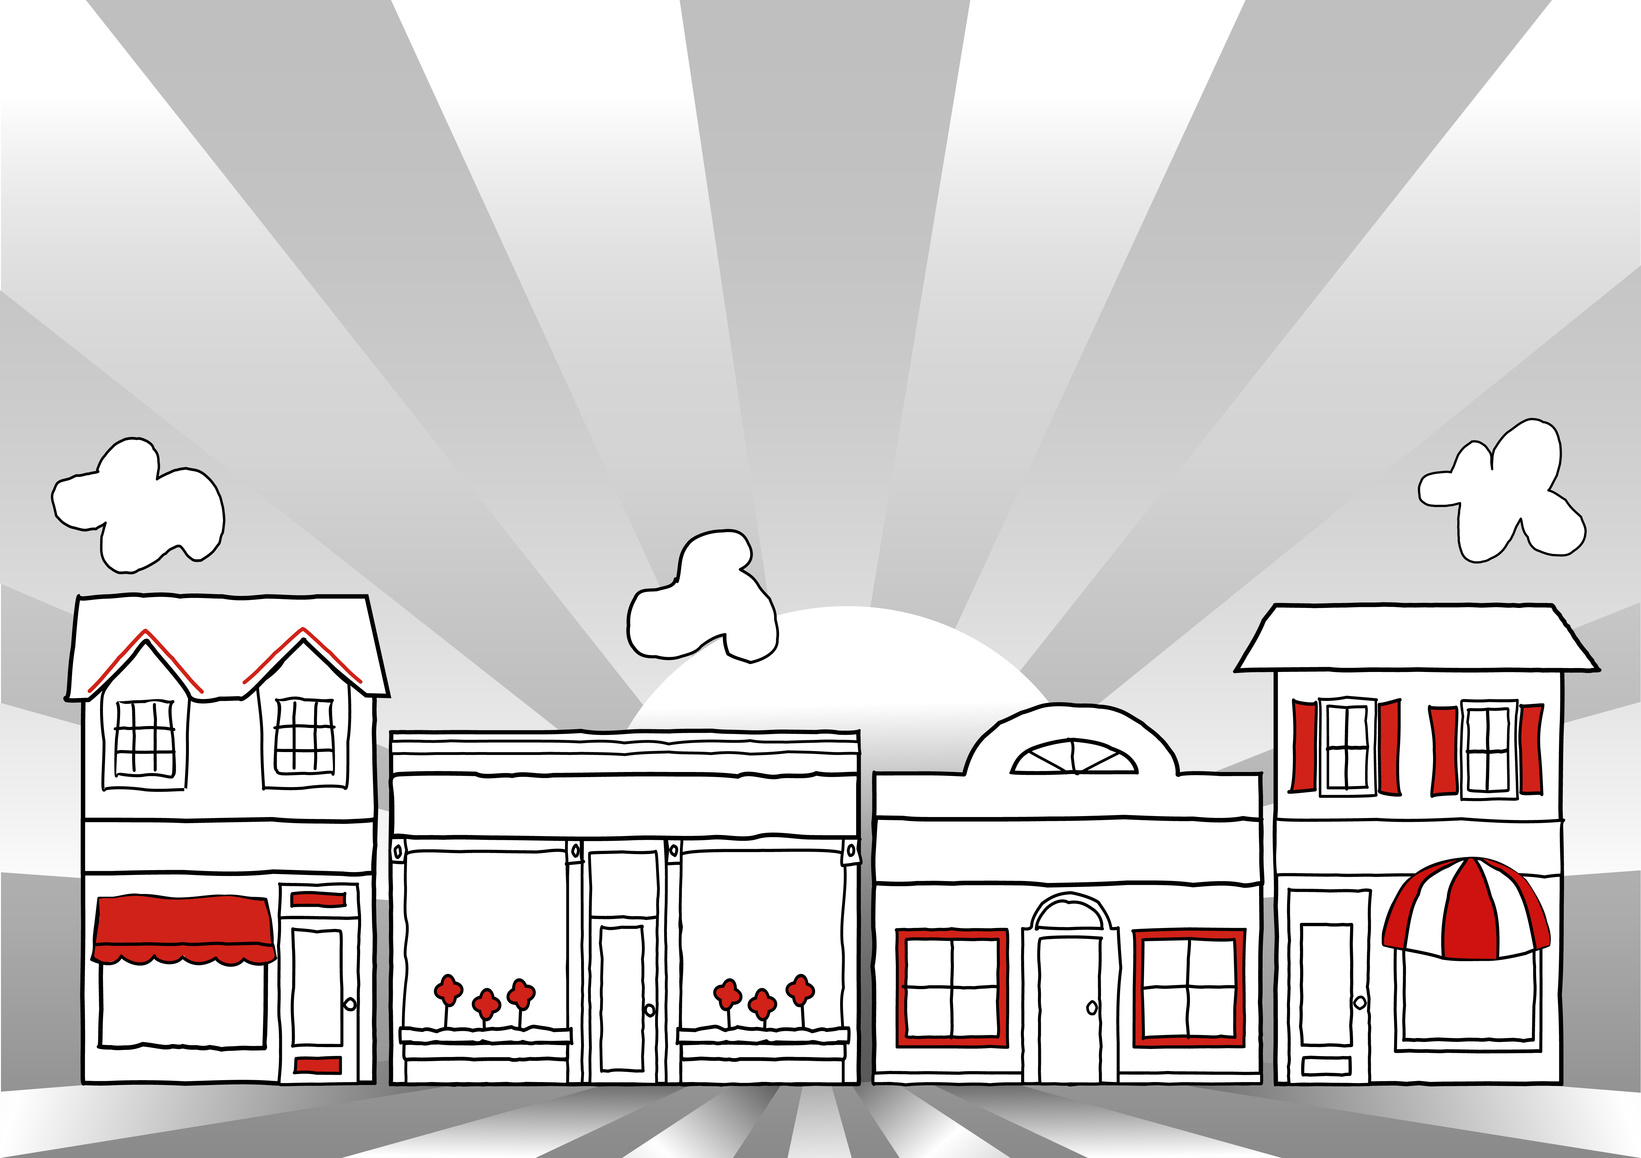 Store fronts drawn in cartoon